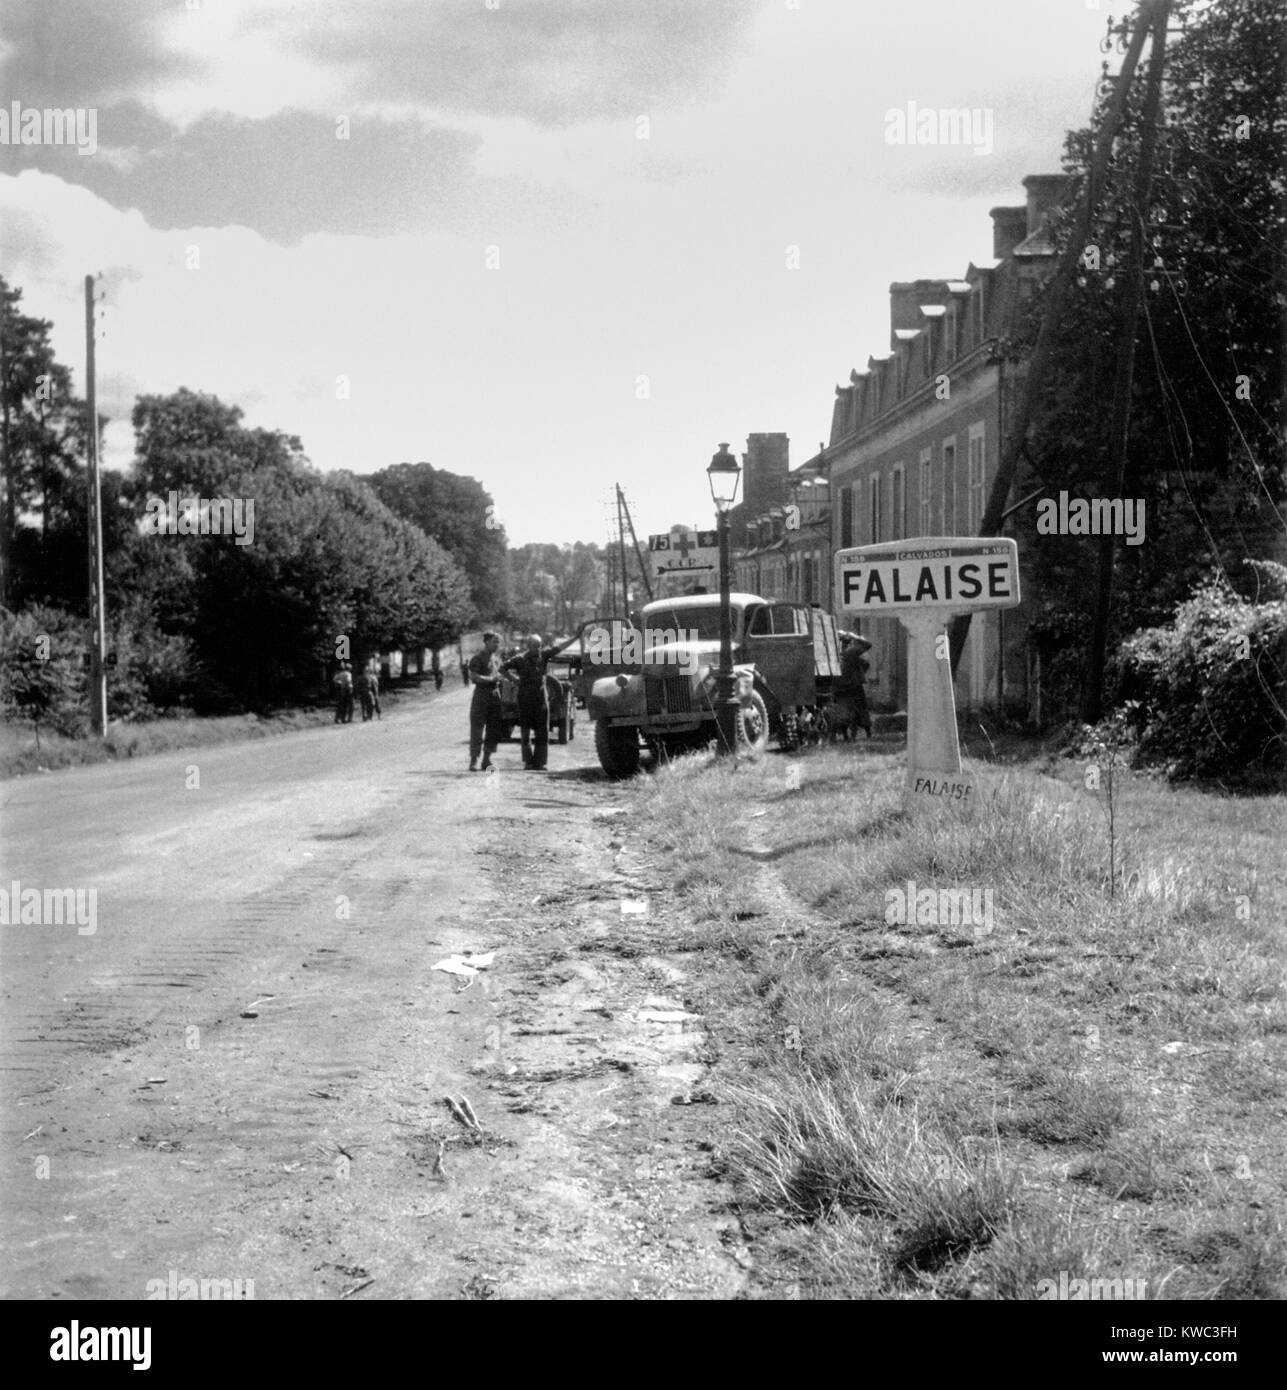 Battle of the Falaise Pocket from August 12-21, 1944 was the decisive Battle of Normandy. The German Army was destroyed - Stock Image